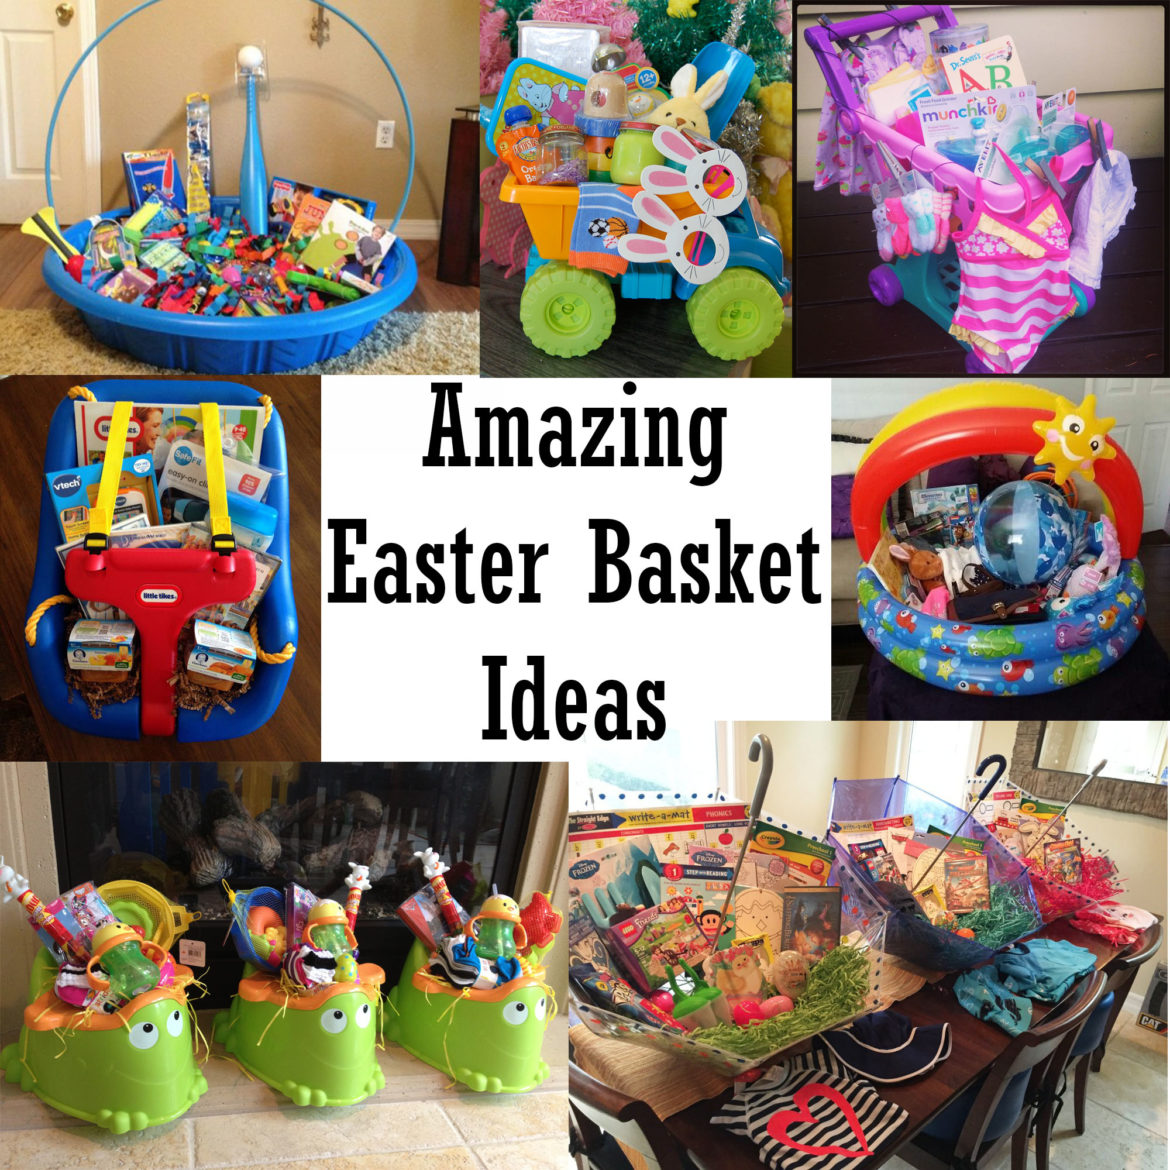 Amazing Easter Basket Ideas - The Keeper of the Cheerios